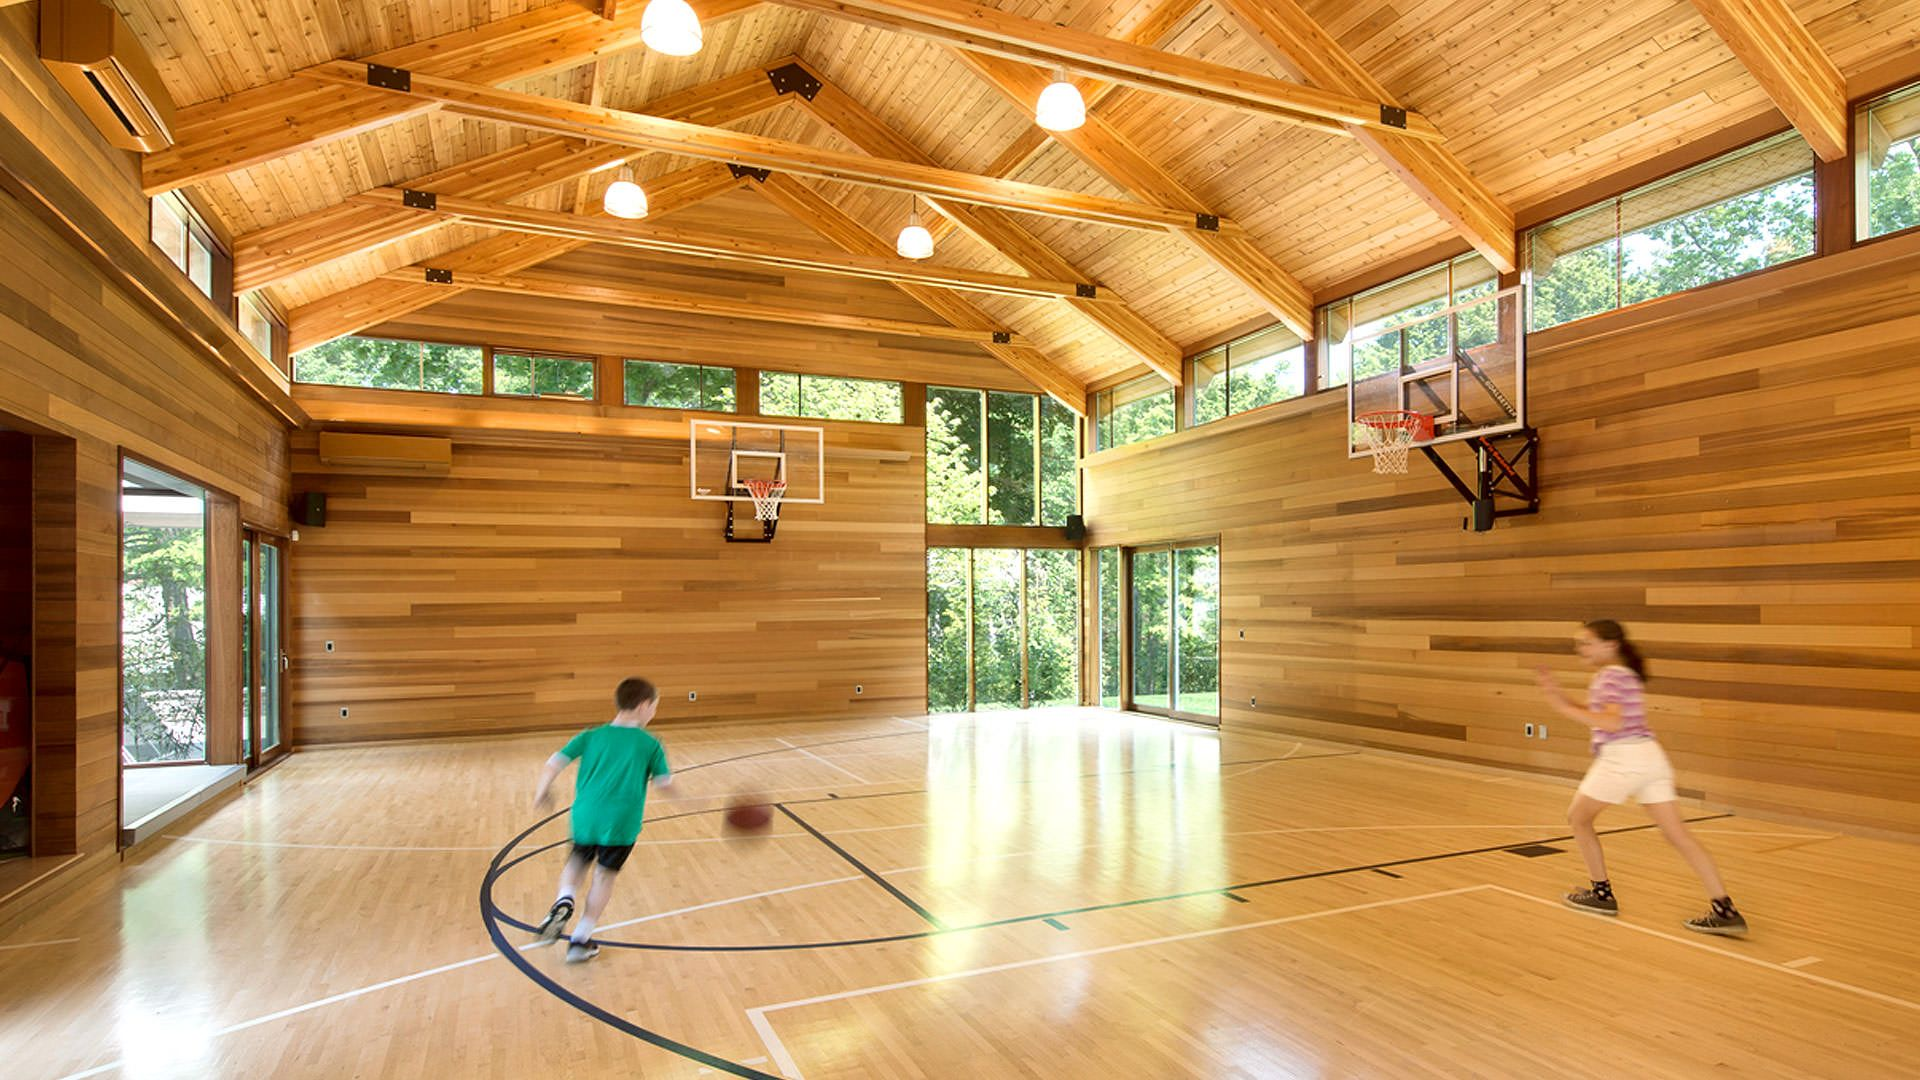 Design Architecture Grand Rapids Mi Mathison Mathison Architects Home Basketball Court Indoor Basketball Court Indoor Sports Court